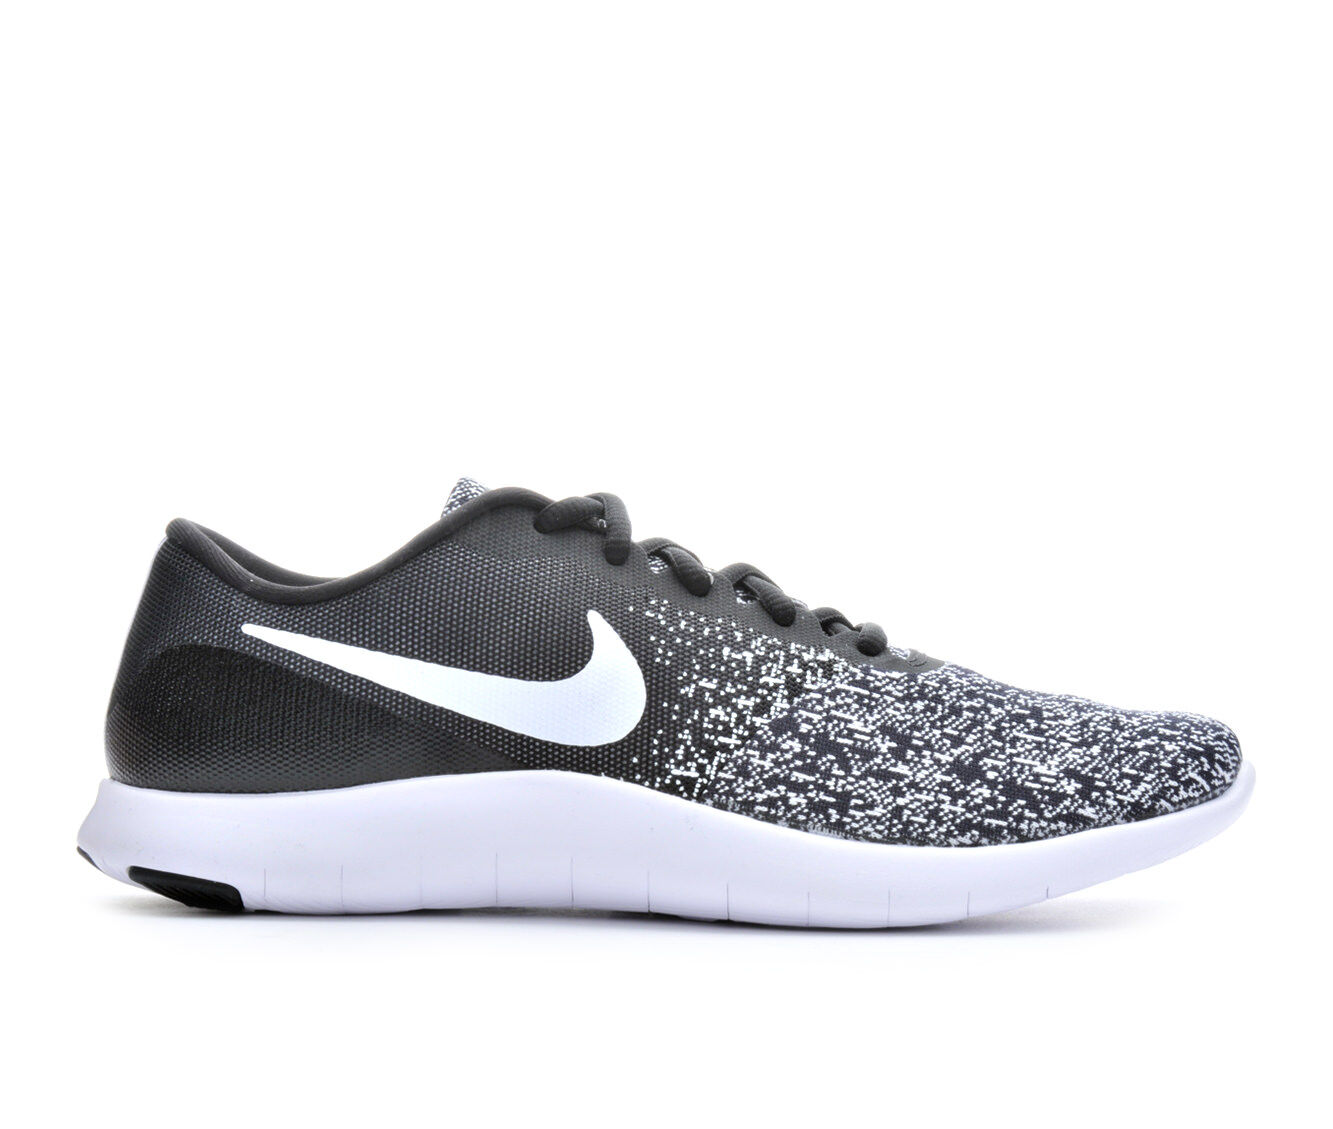 bb12ccd1c7d19 ... france womens nike flex contact running shoes shoe carnival 7254f 2ad49